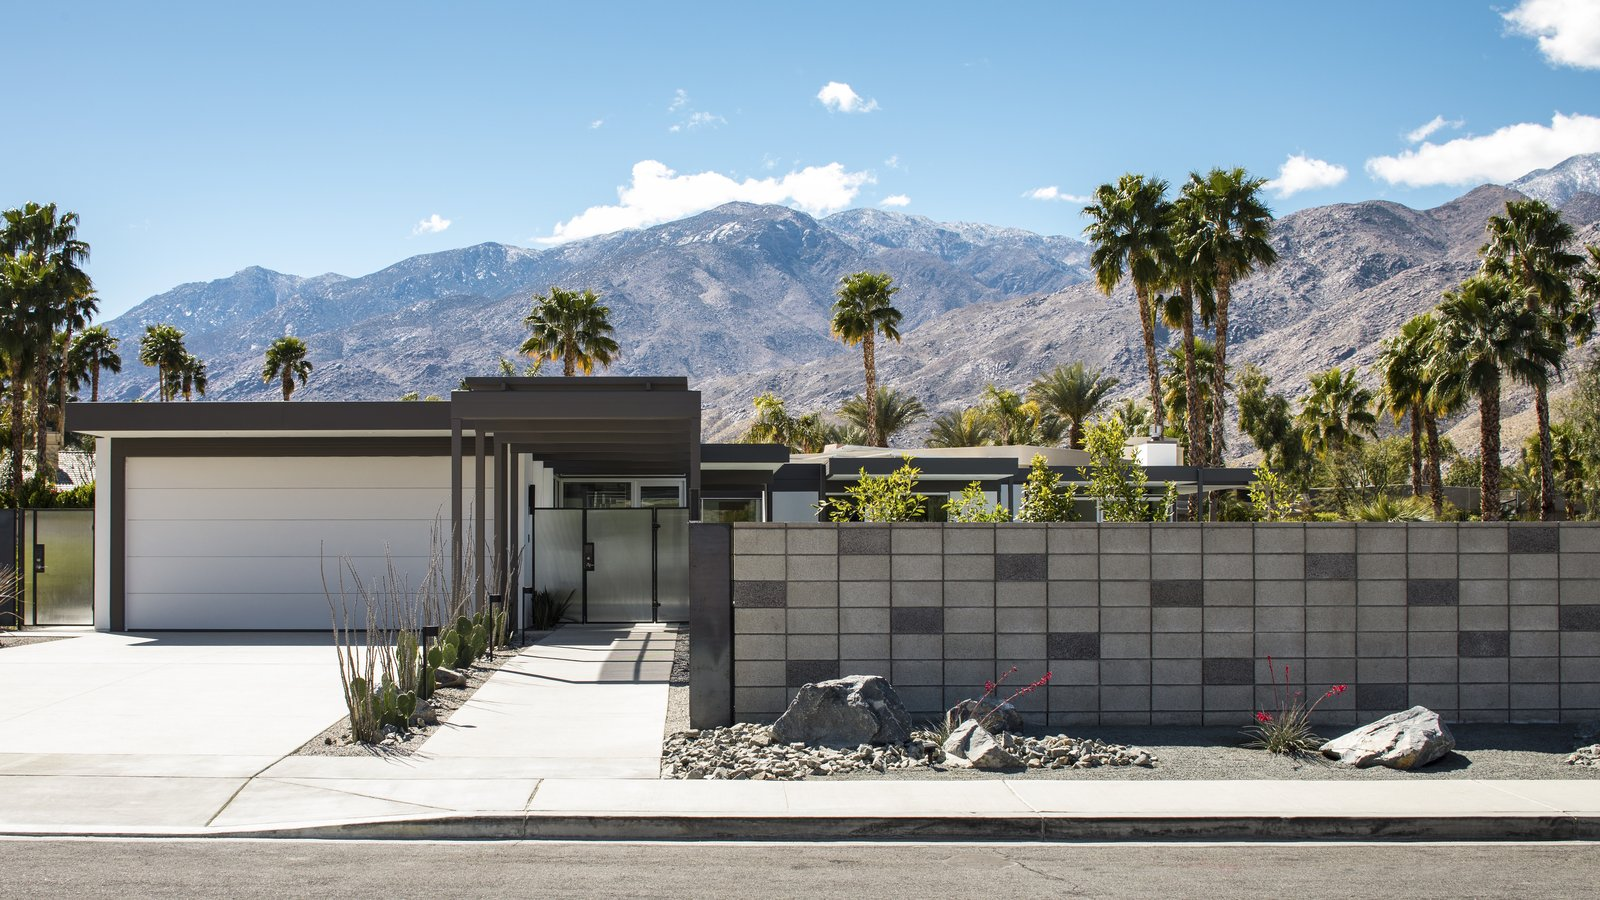 A steel framed canopy leads directly to the front entry of the dwelling.  A concrete block fence provides privacy from the surrounding neighborhood. Drought tolerant landscaping dots the landscape.